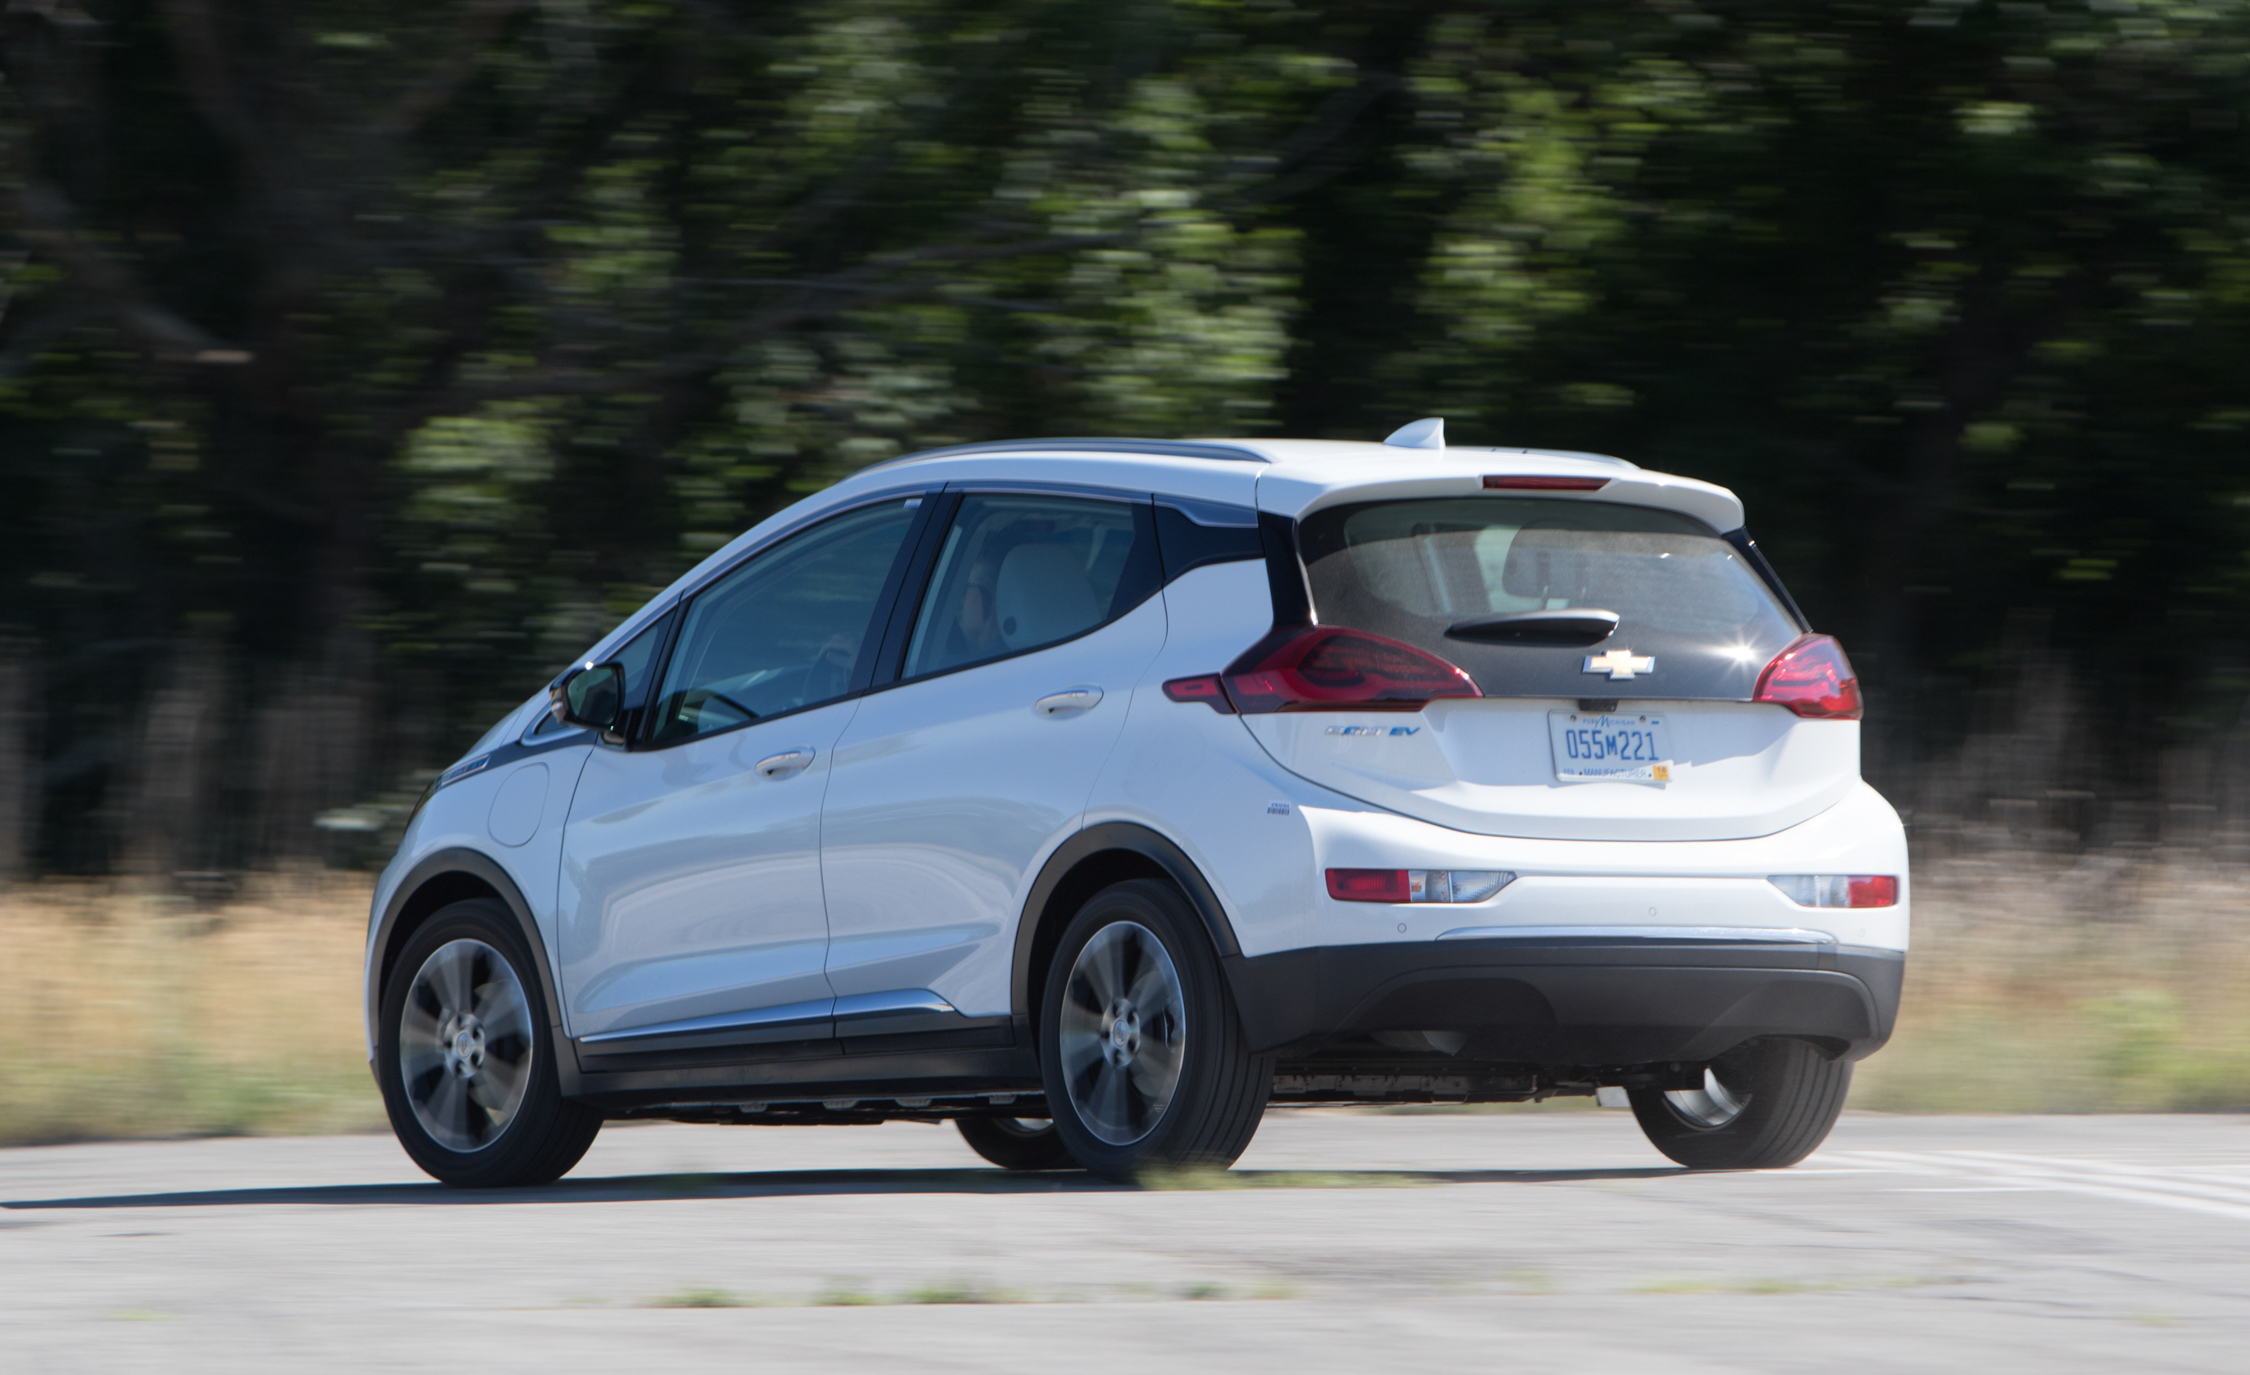 2017 Chevrolet Bolt Ev Test Drive Rear Side (View 4 of 12)